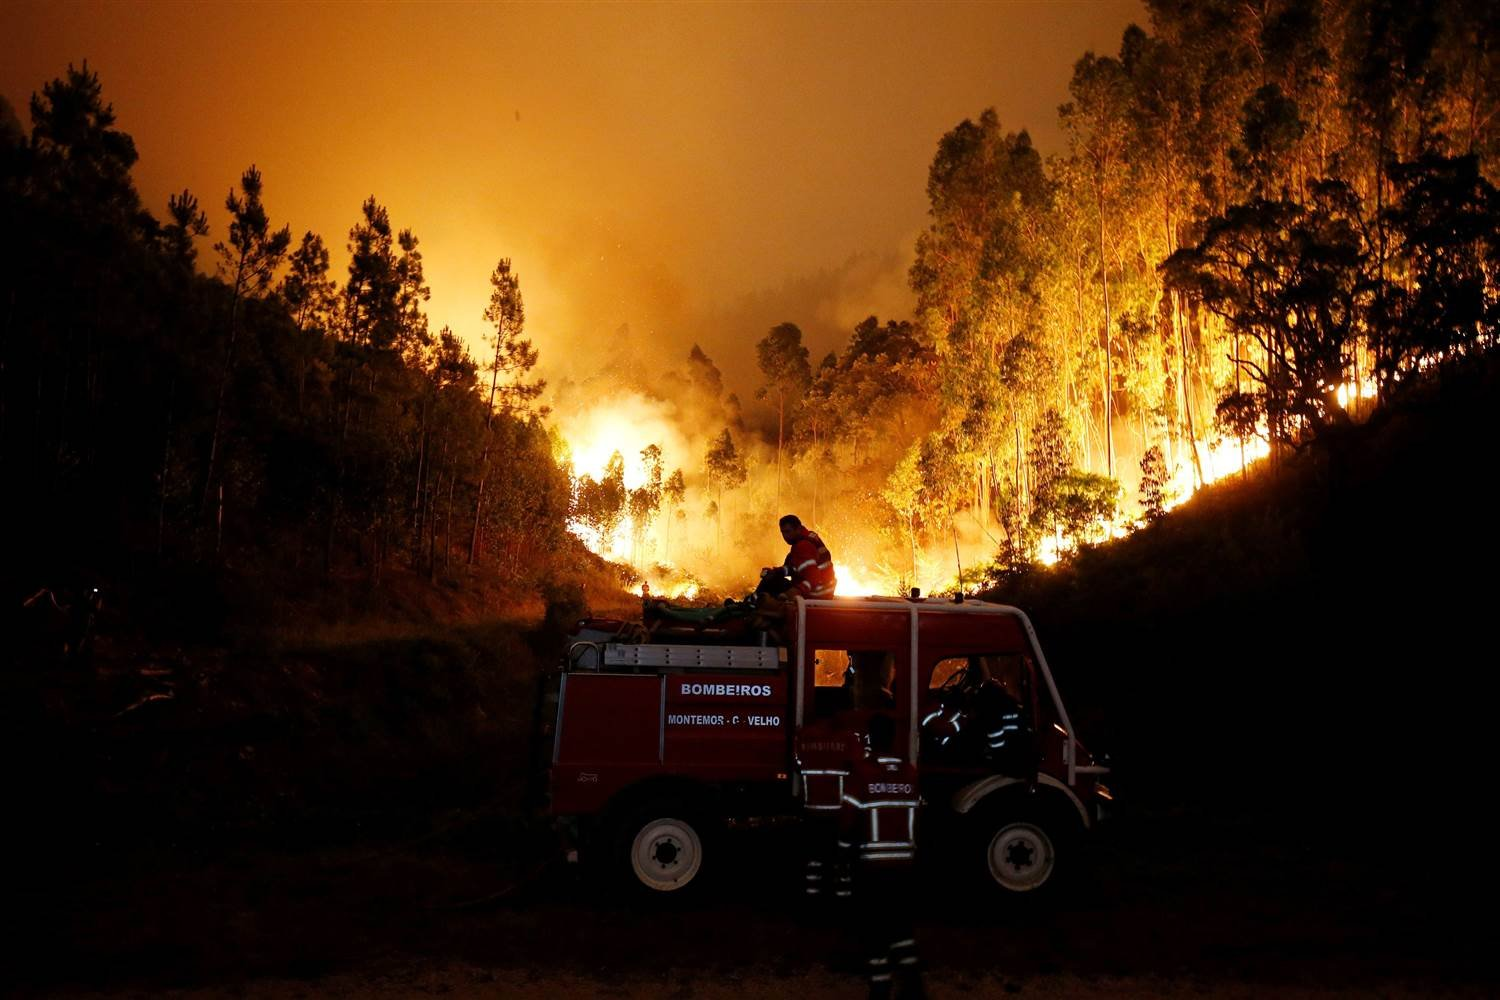 Firefighters work to put out a forest fire near Bouca, in central Portugal. RAFAEL MARCHANTE / Reuters